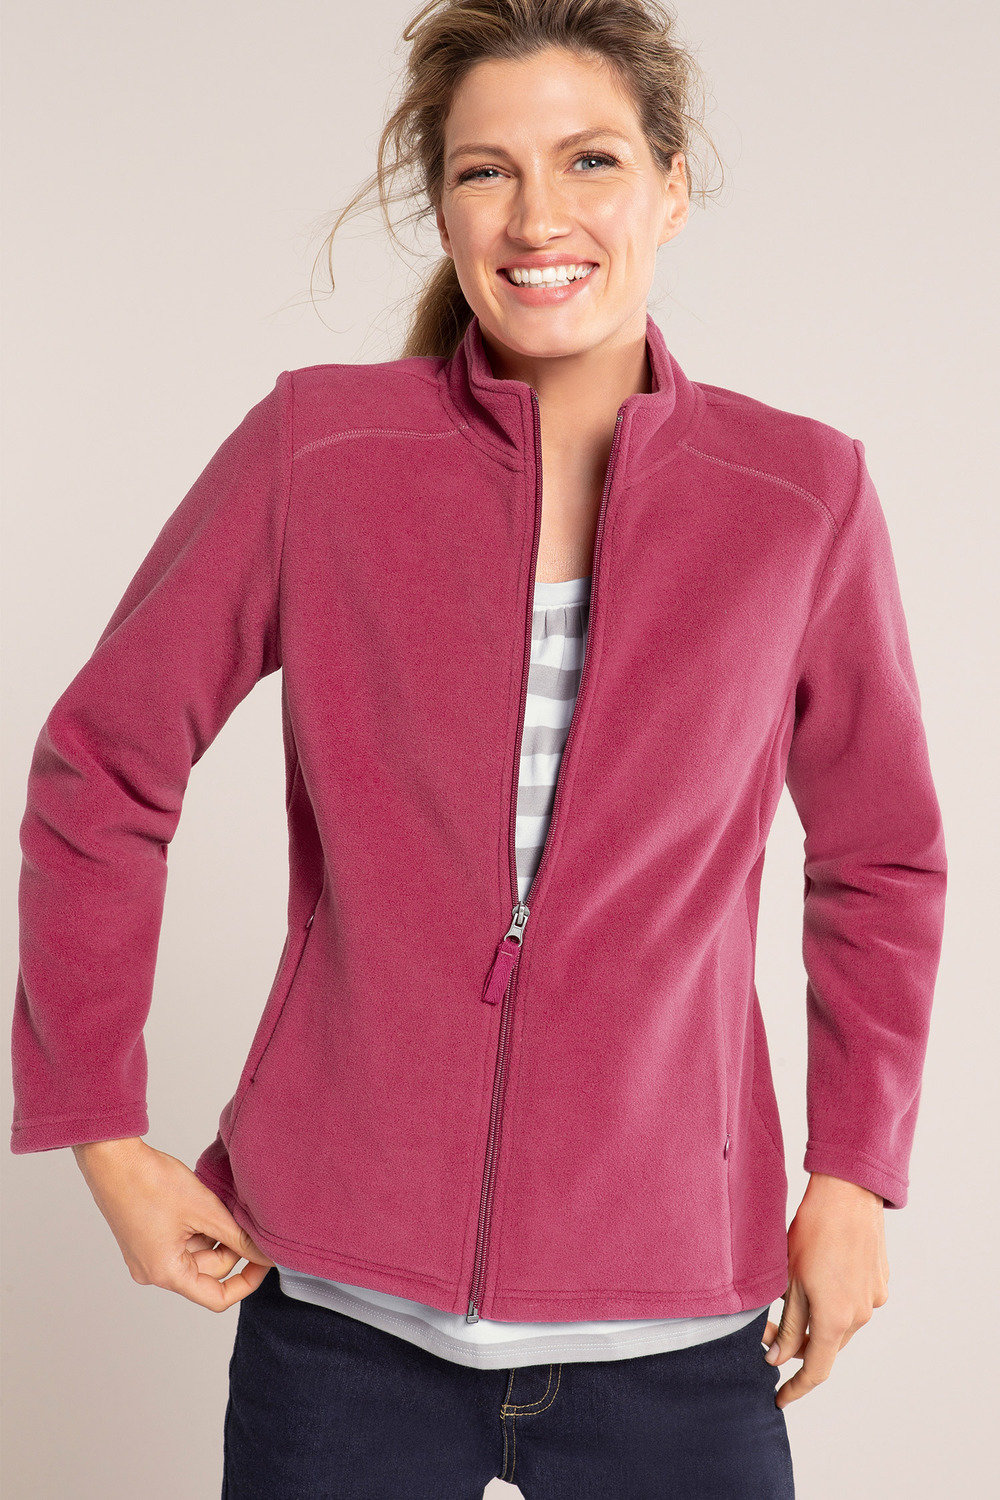 Polar Fleece Bettwäsche Capture Zip Micro Polar Fleece Jacket Online | Shop Ezibuy